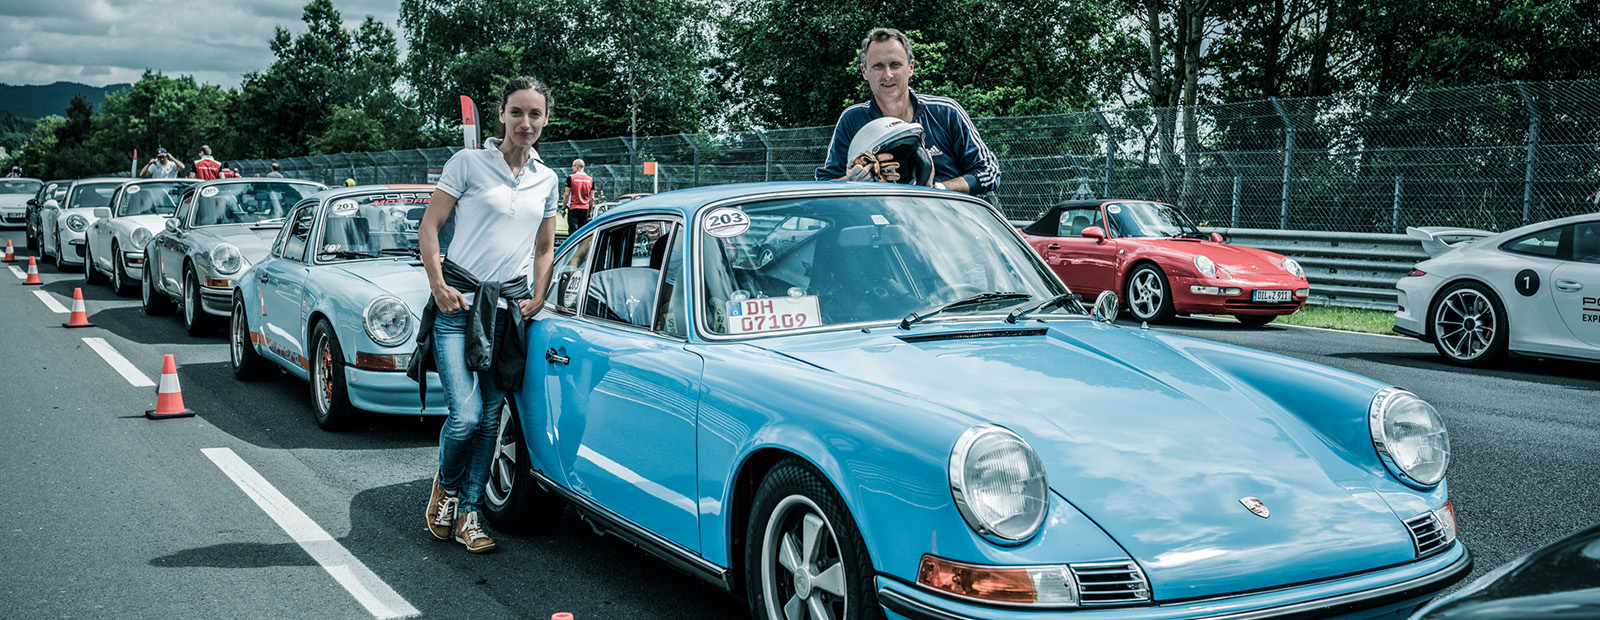 70 Years of Porsche – Motor Magazine